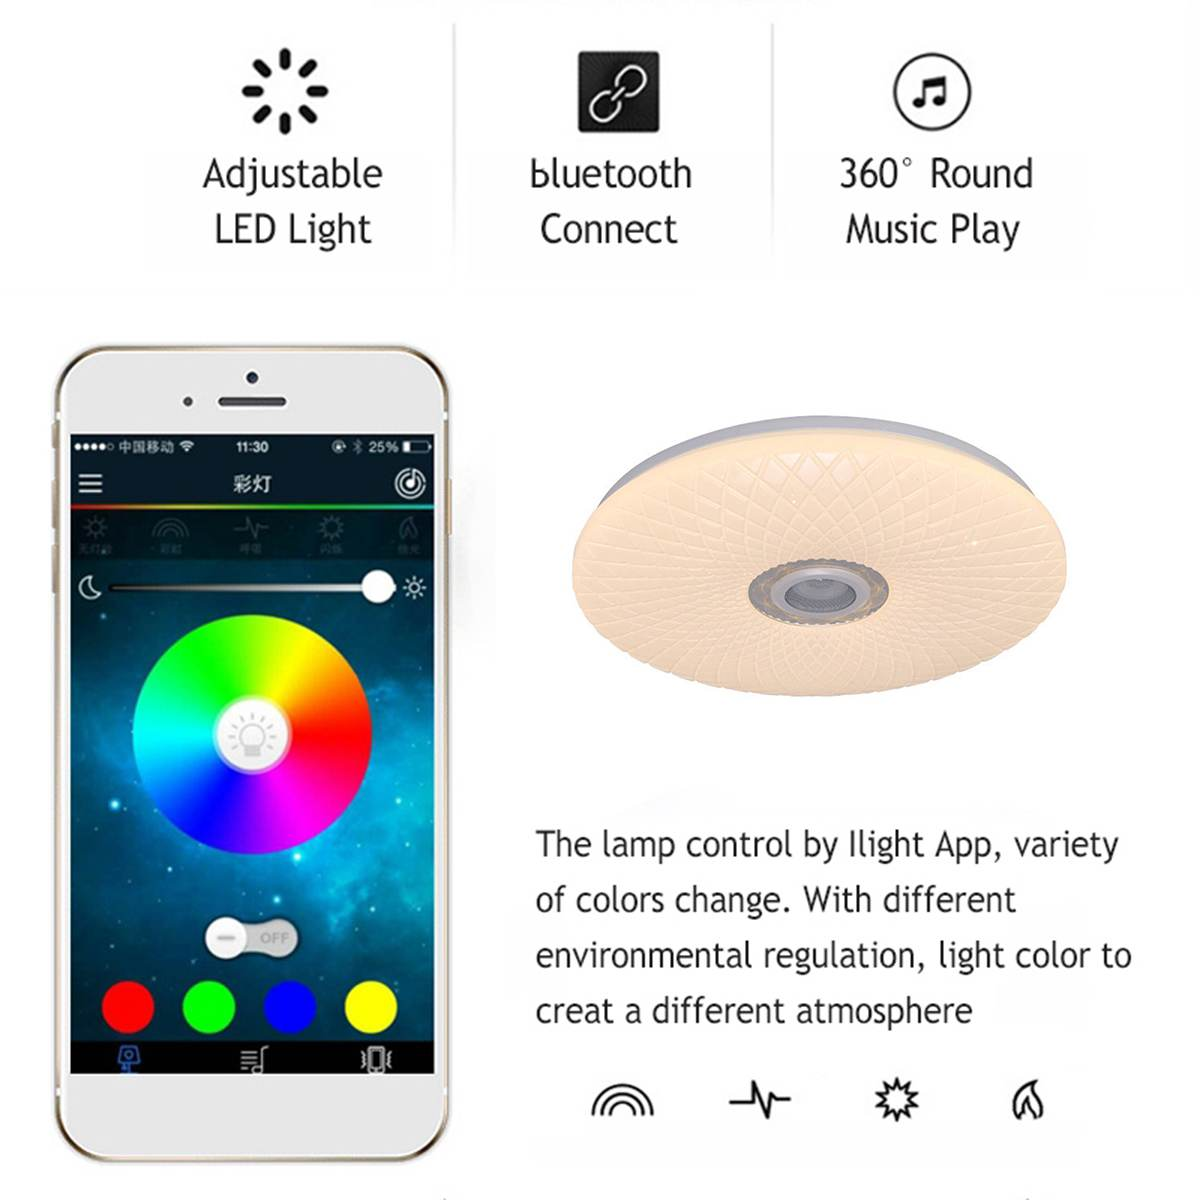 H8b01f7dc69b244a0a238f6a657db77cfU Modern RGB LED Ceiling Light home lighing 36W/60W 40cm APP Remote Control bluetooth Music Light Bedroom Lamp Smart Ceiling Lamp